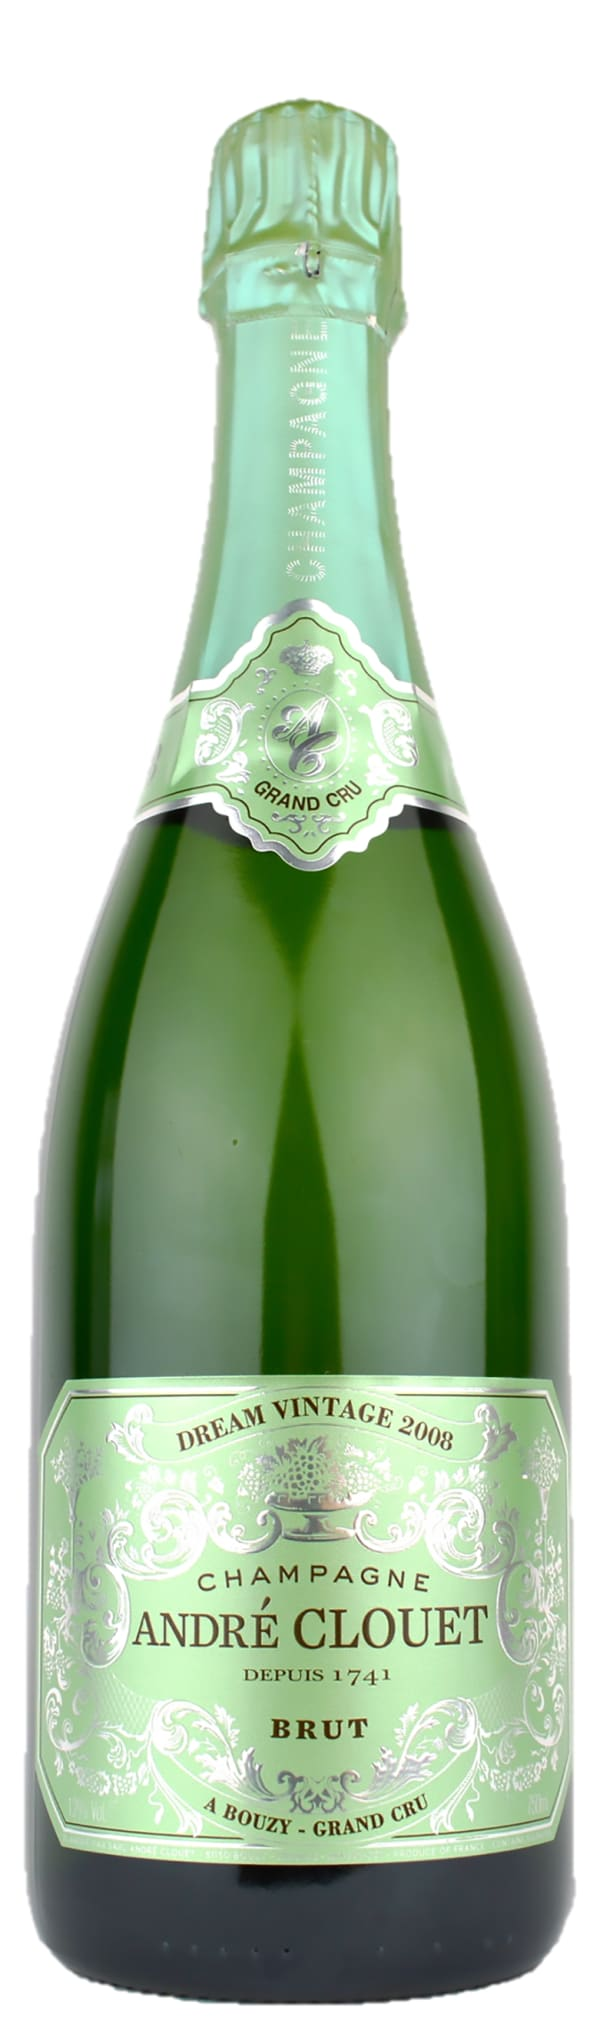 André Clouet Dream Vintage Grand Cru Champagne Brut 2008